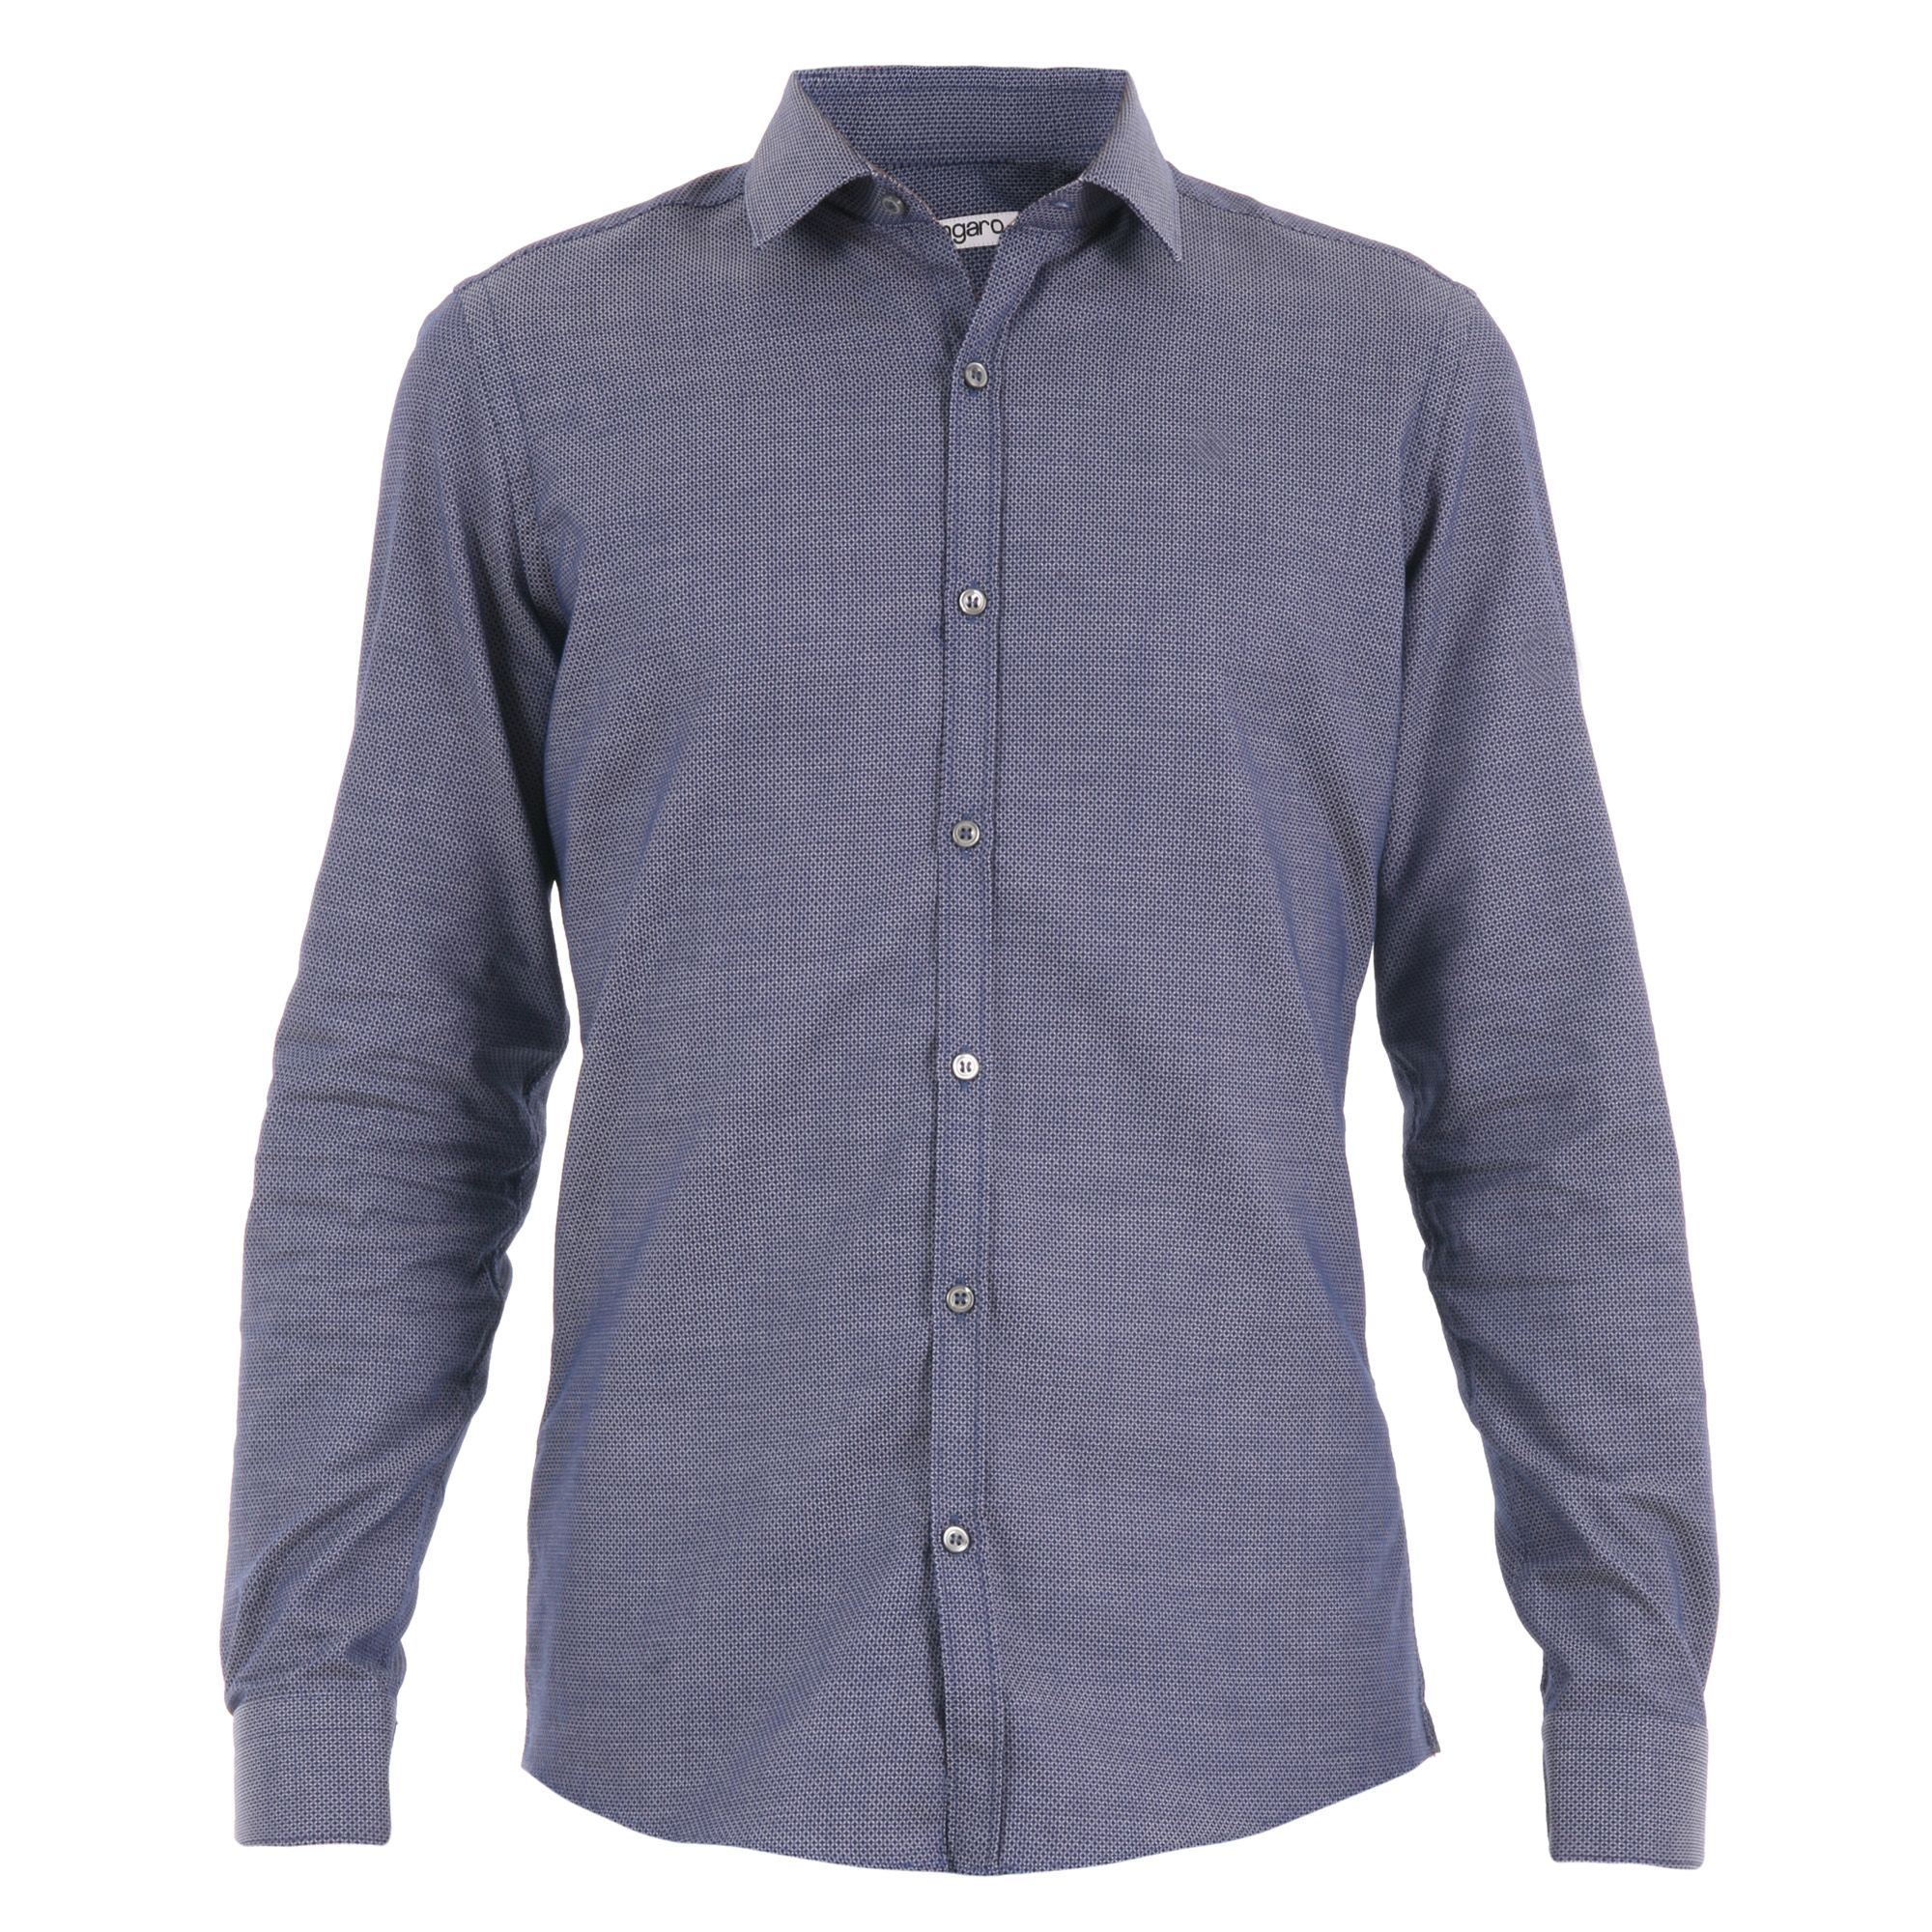 Emanuel Ungaro Slim Fit Cotton Jacquard Shirt